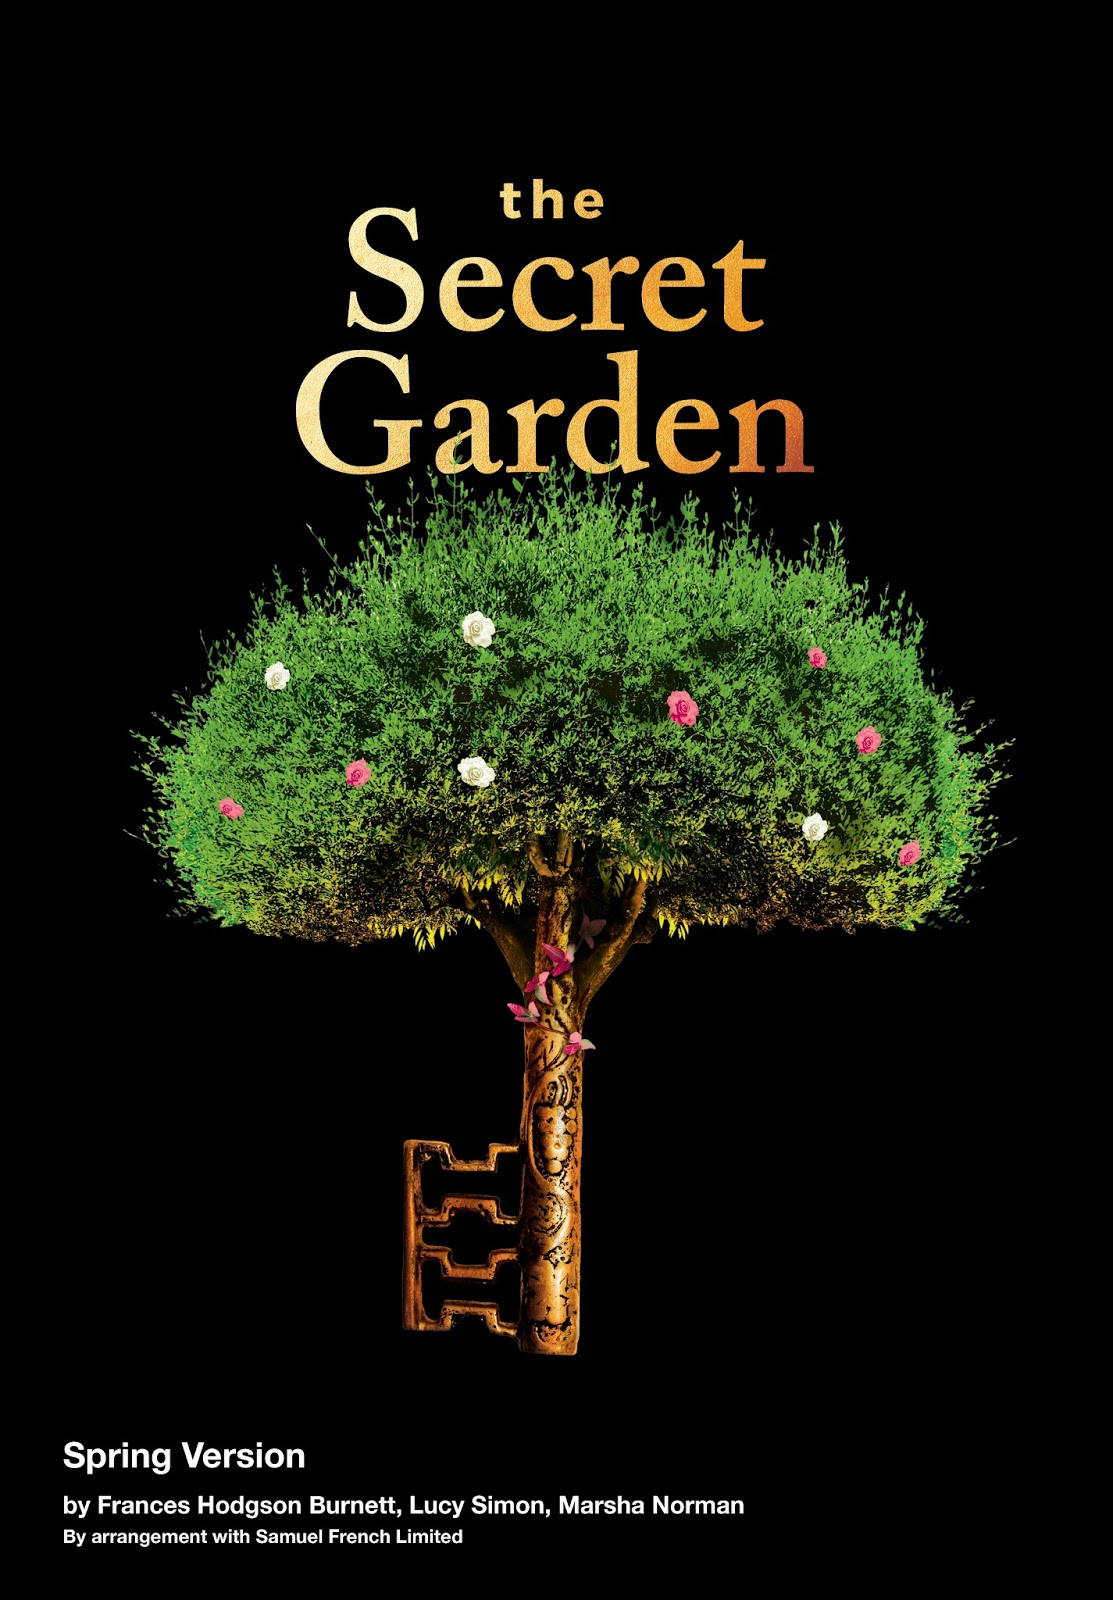 The Secret Garden The Ambassadors Theatre The Gizzle Review